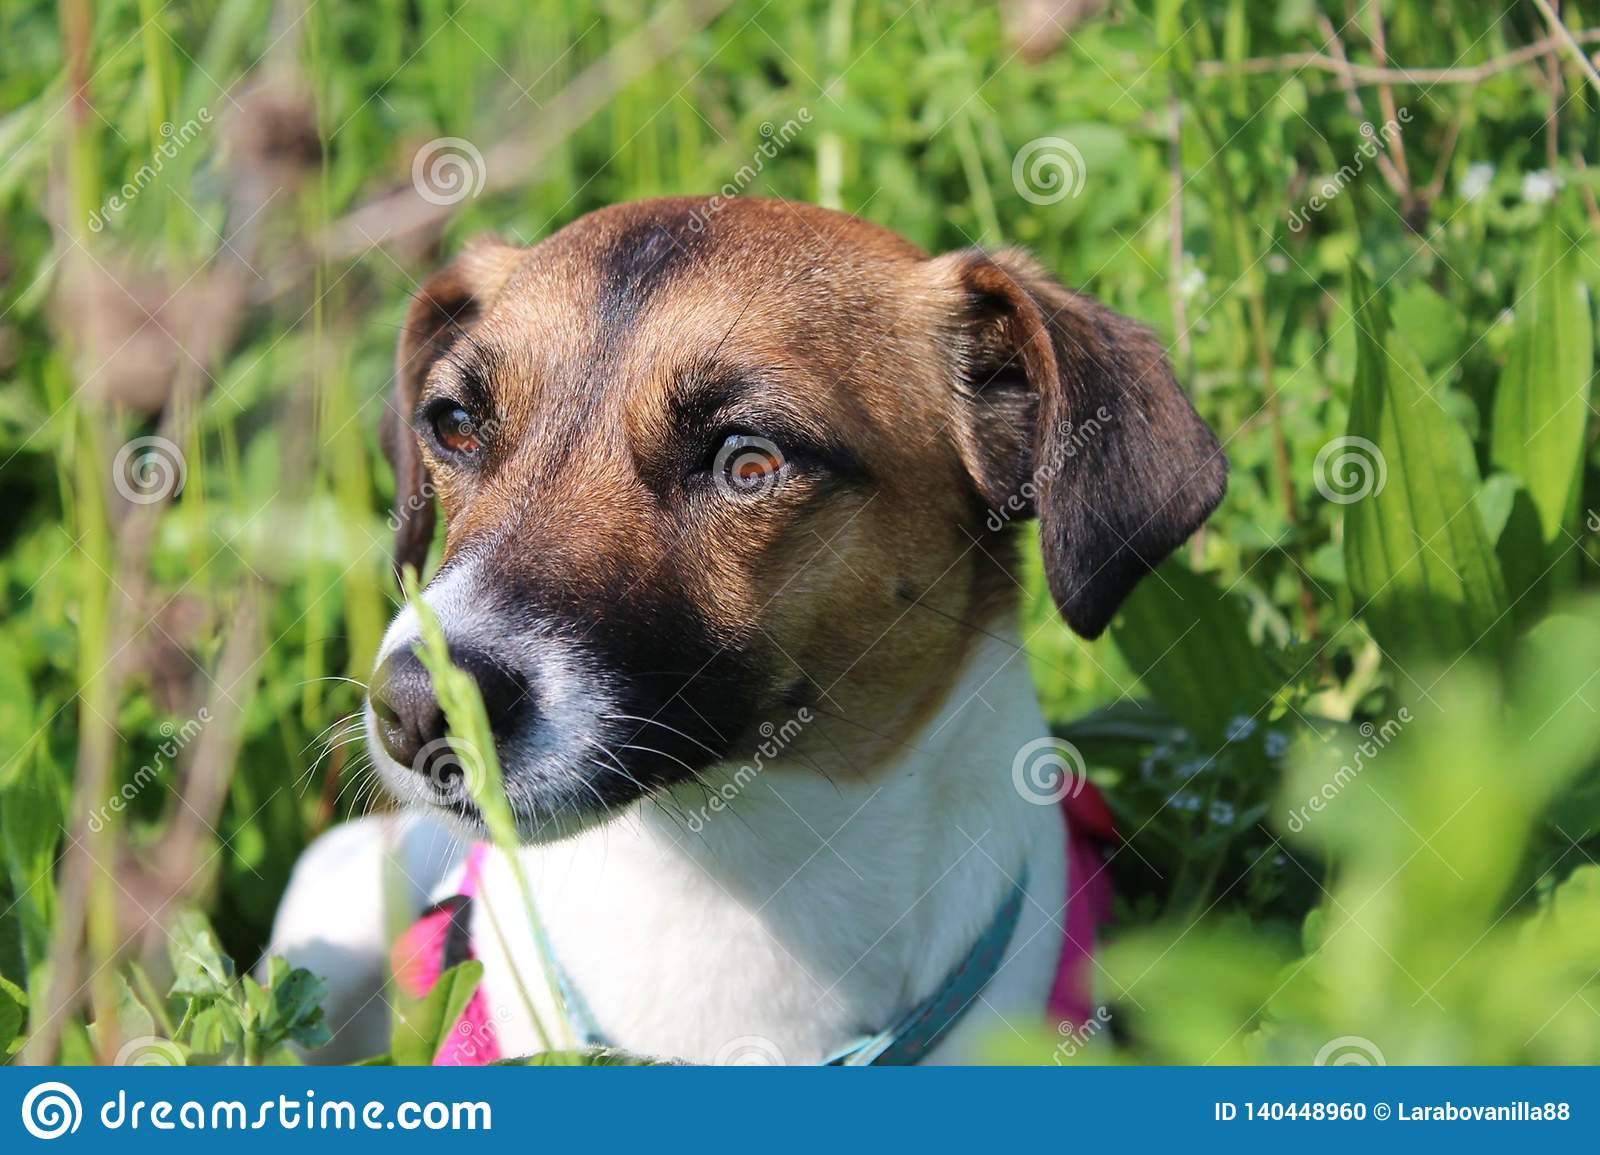 Jack russell in a green meadow